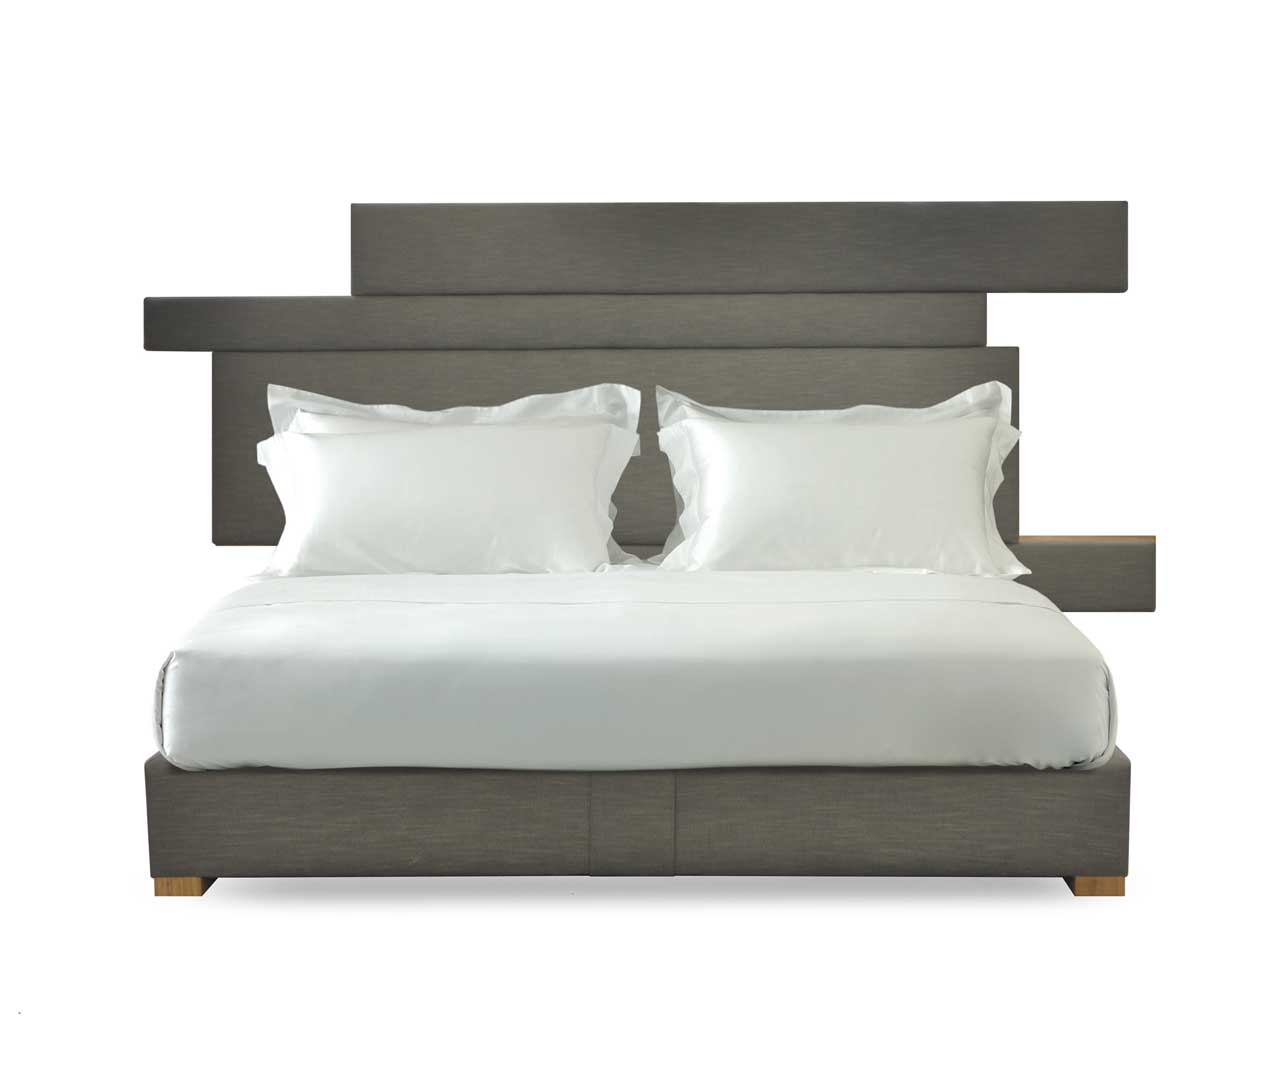 Savoir Beds Debuts Designer Beds by Arik Levy and Teo Yang - Design Milk